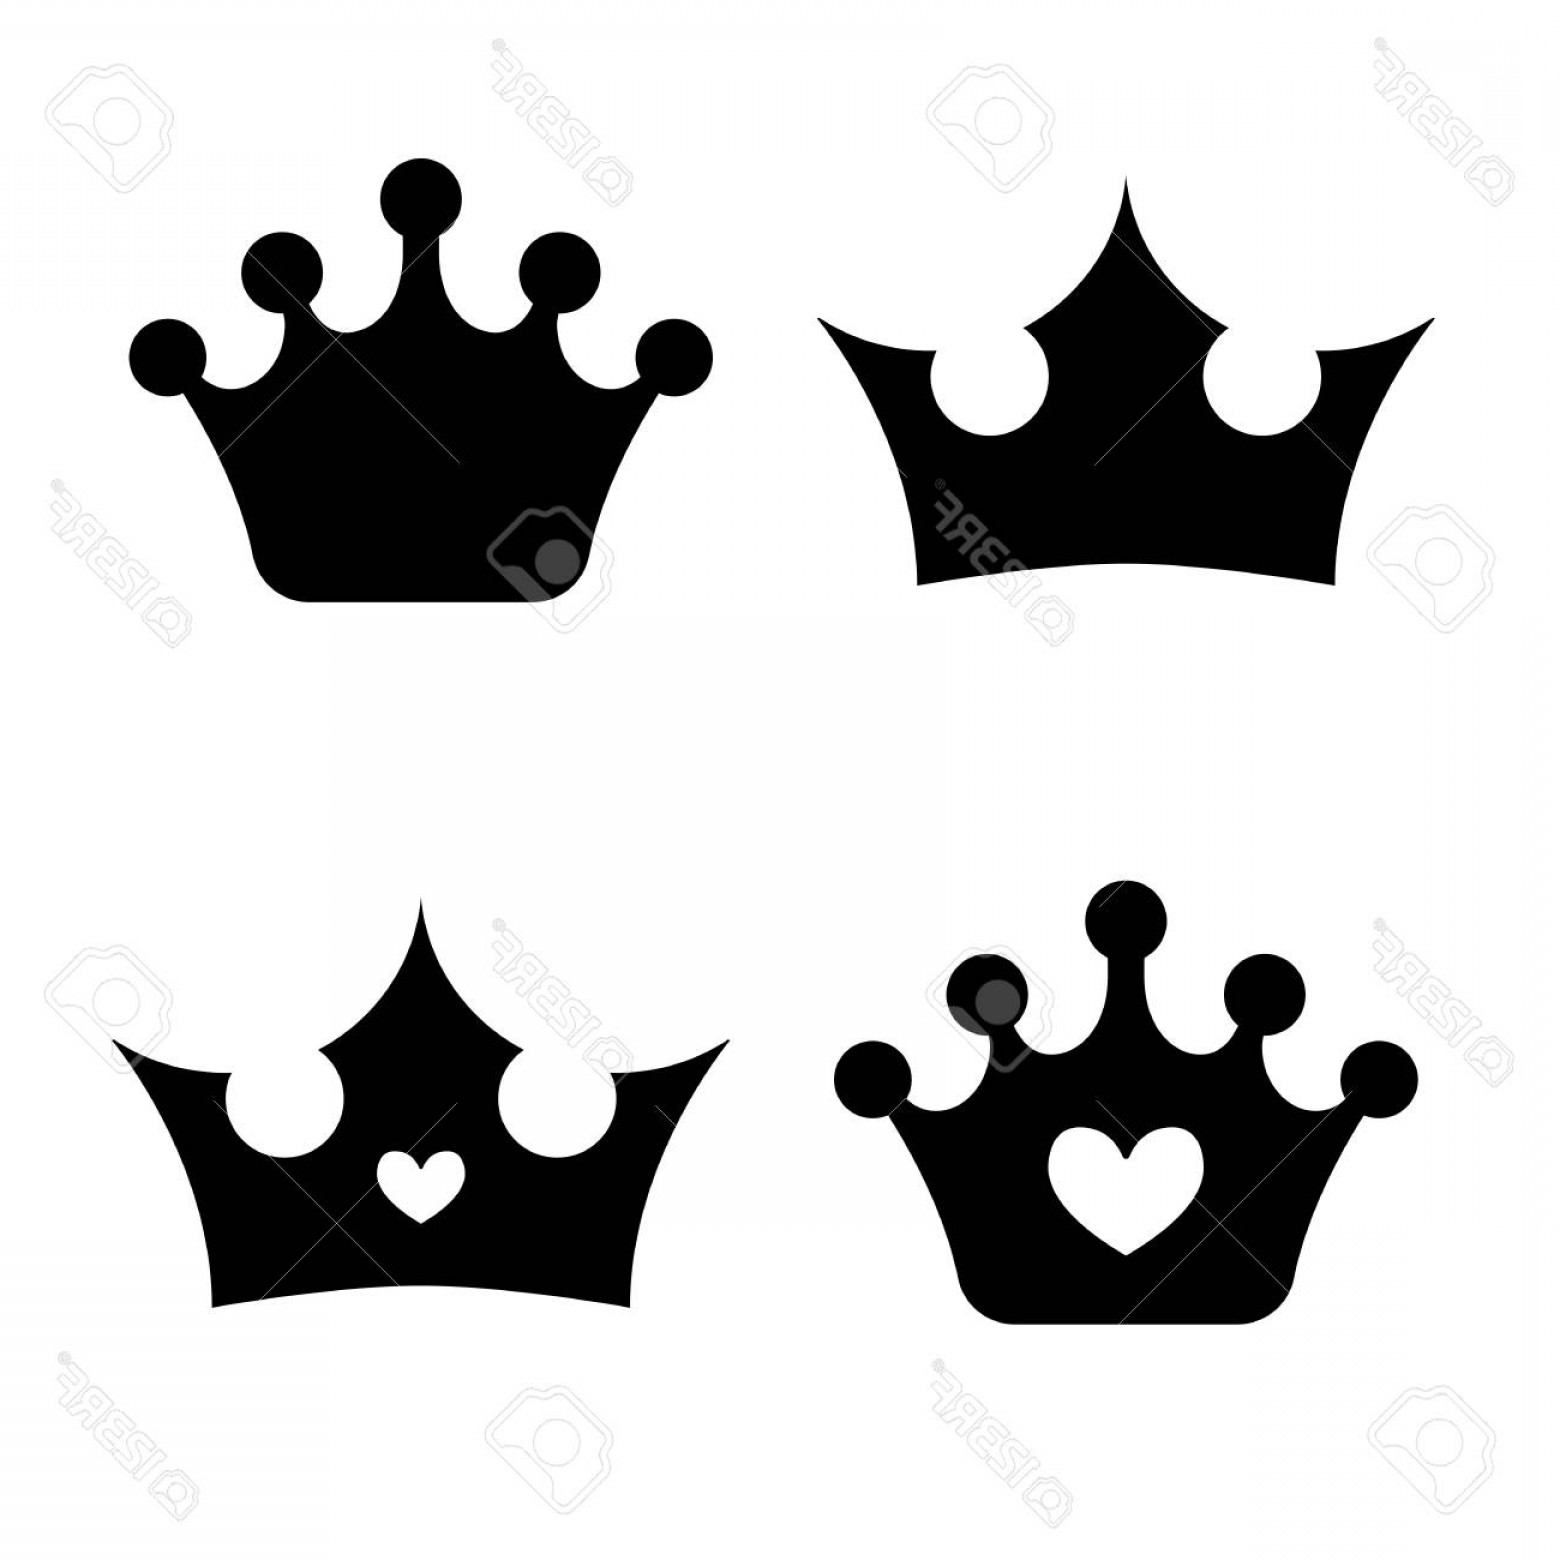 Princess Crown Vector Graphic: Photostock Vector Crown Icons Princess Crown Vector Illustration Silhouettes Flat Style